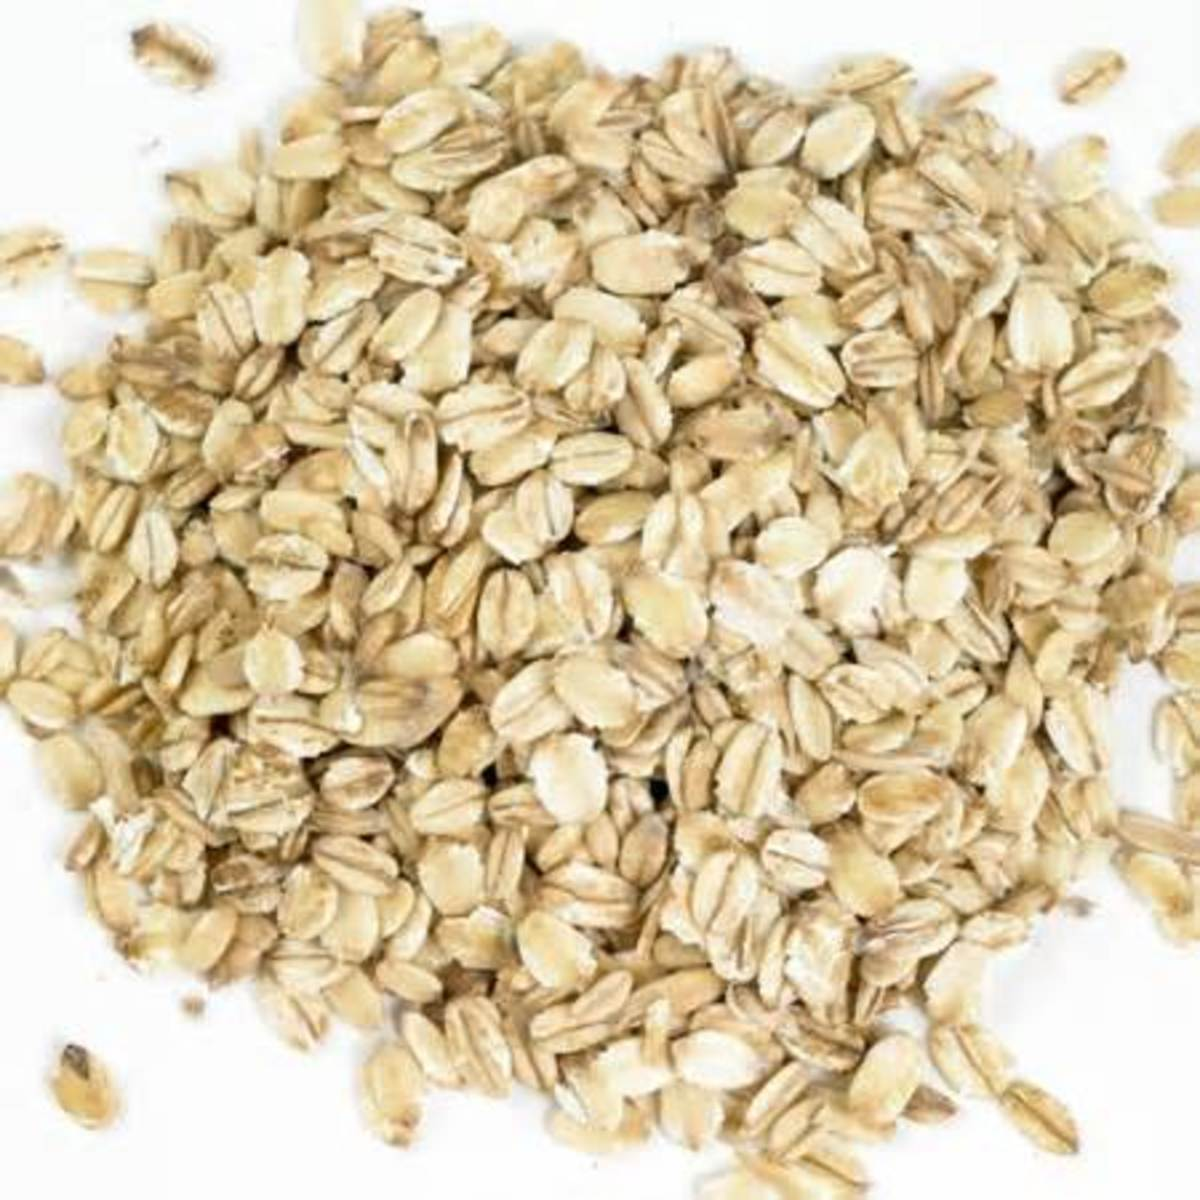 I Don't Like Oatmeal! so How Do I Get More Oats in My Diet?